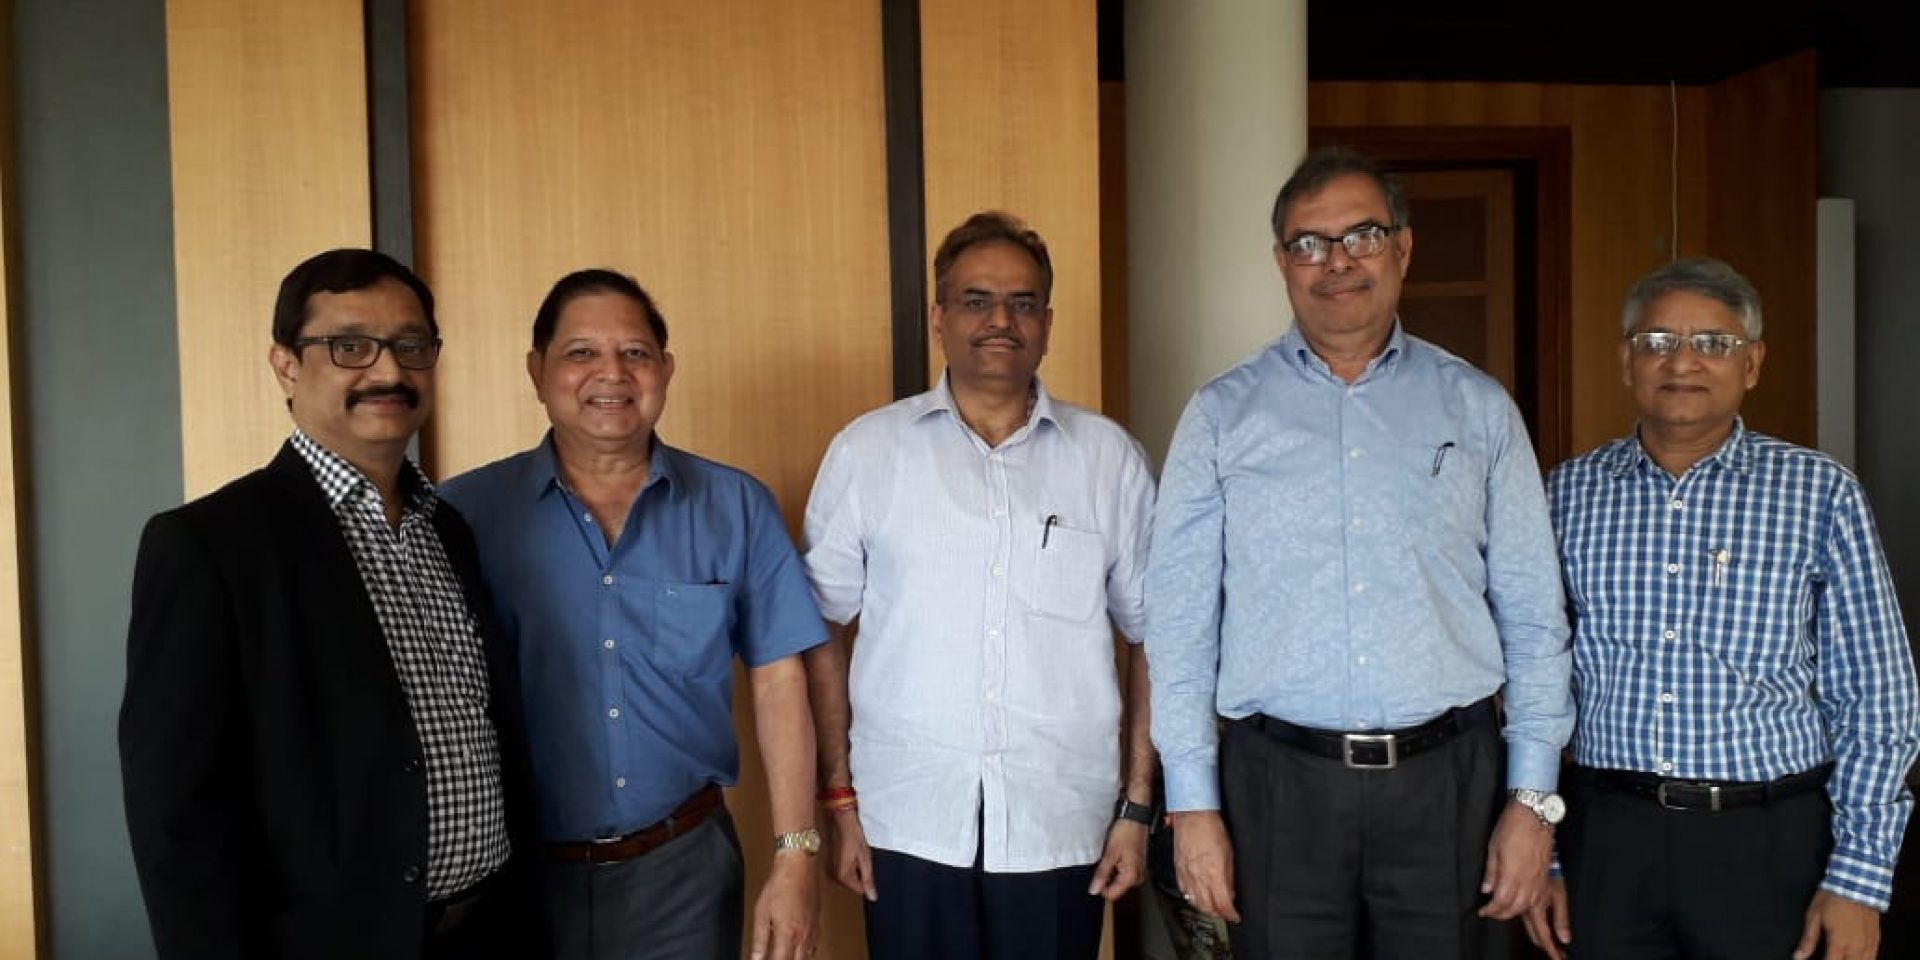 Goa Chamber President Mr Sandip Bhandare and other officer bearers with Chief Secretary Mr Parimal Rai on 25th January, 2019